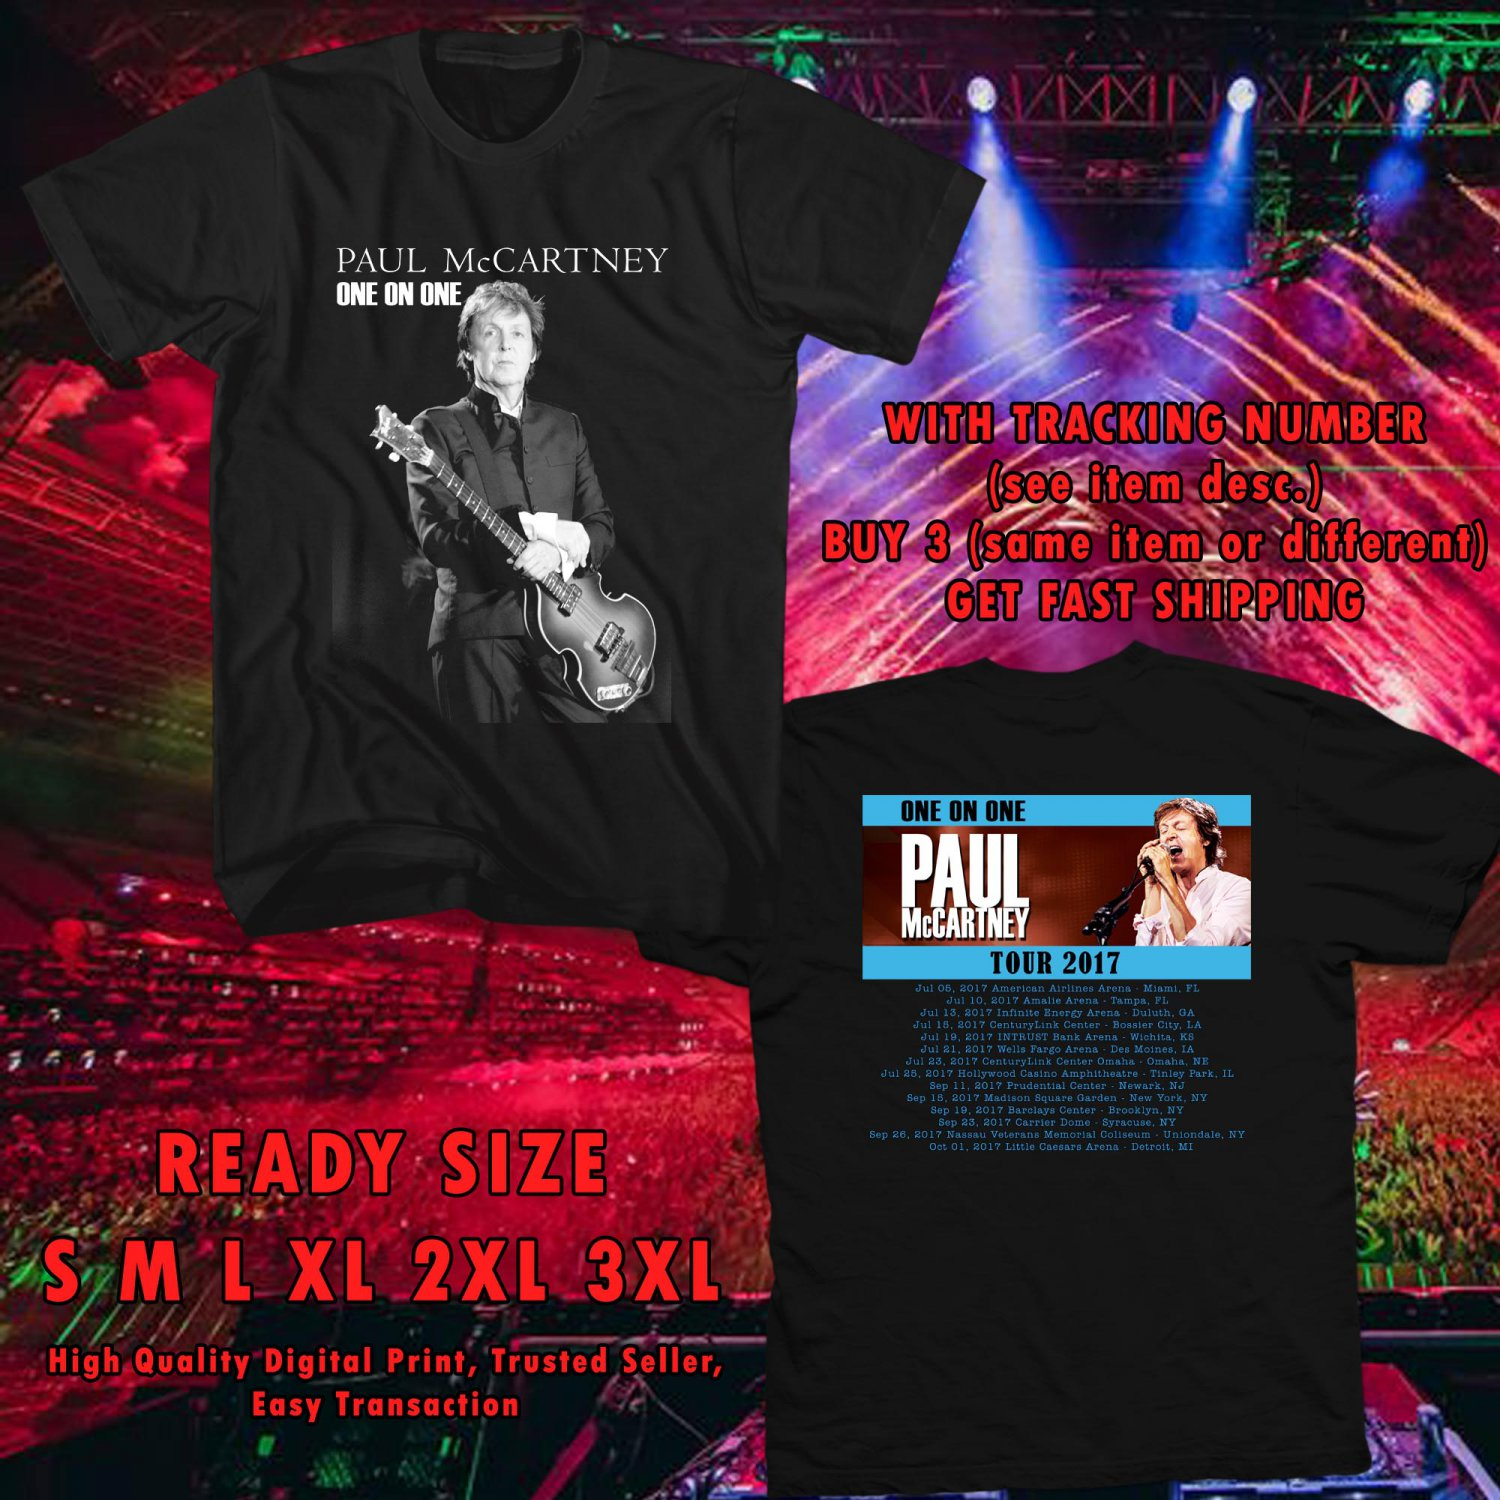 HITS PAUL McCARTNEY ADD ONE ON ONE TOUR 2017 BLACK TEE'S 2SIDE MAN WOMEN ASTR 332